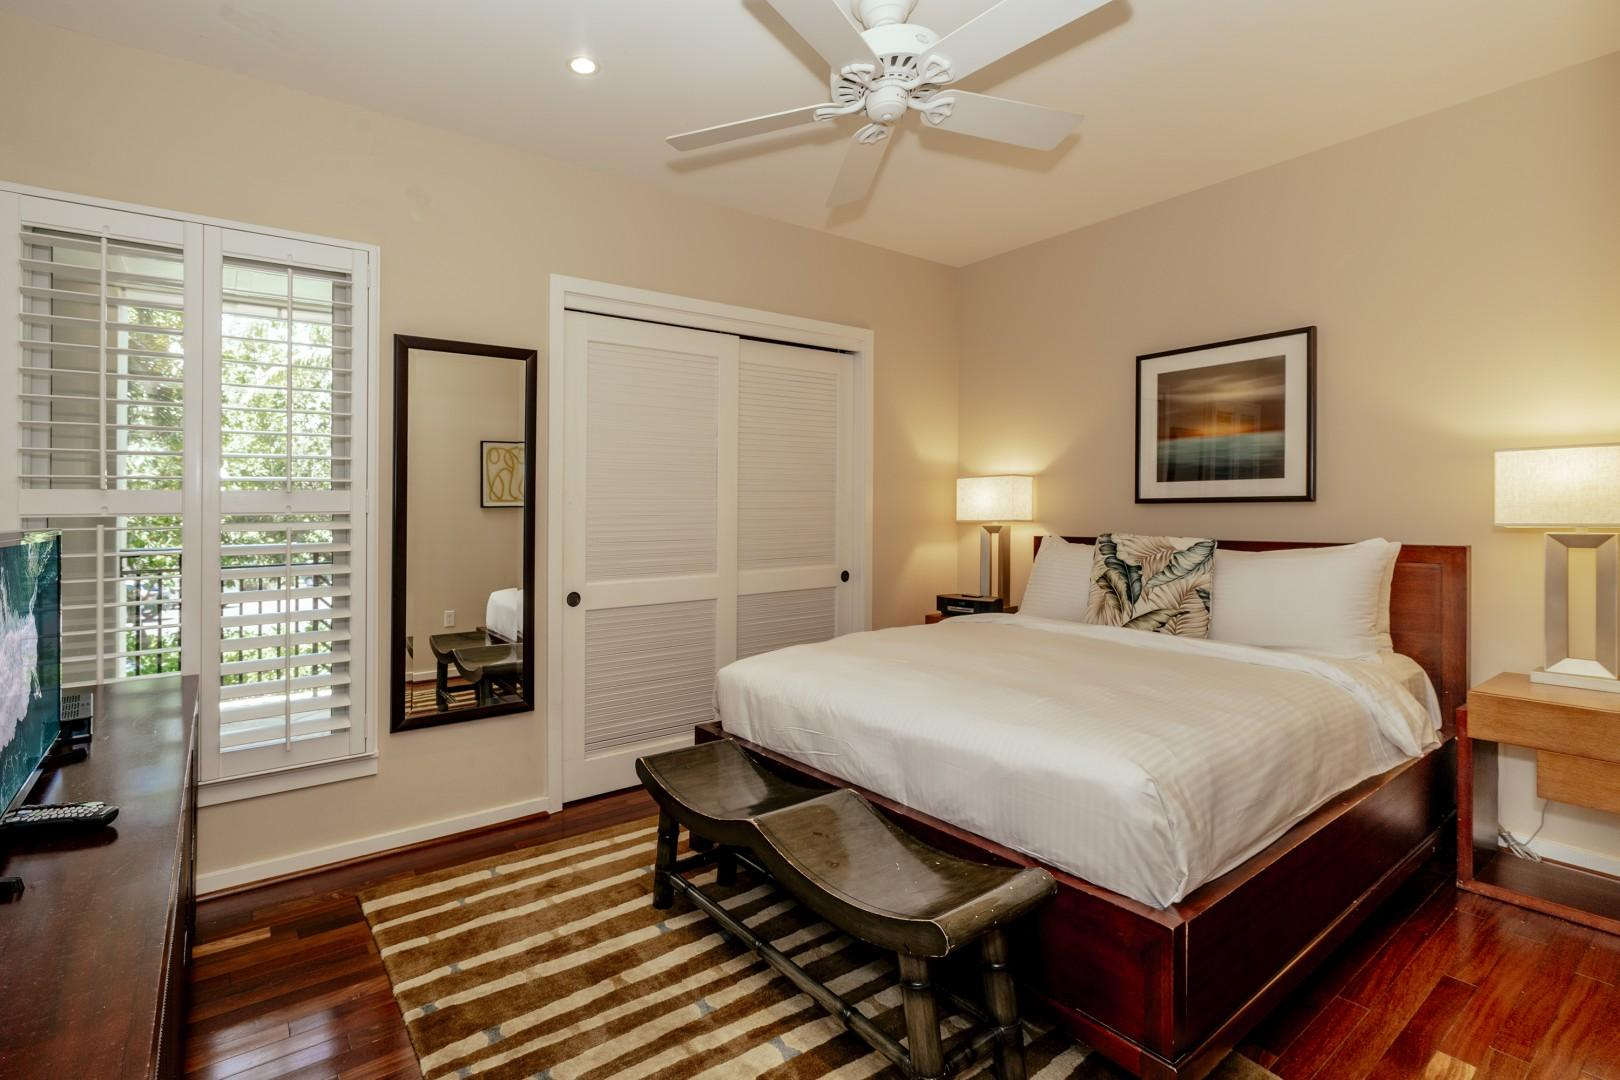 Guest bedroom 1 with a